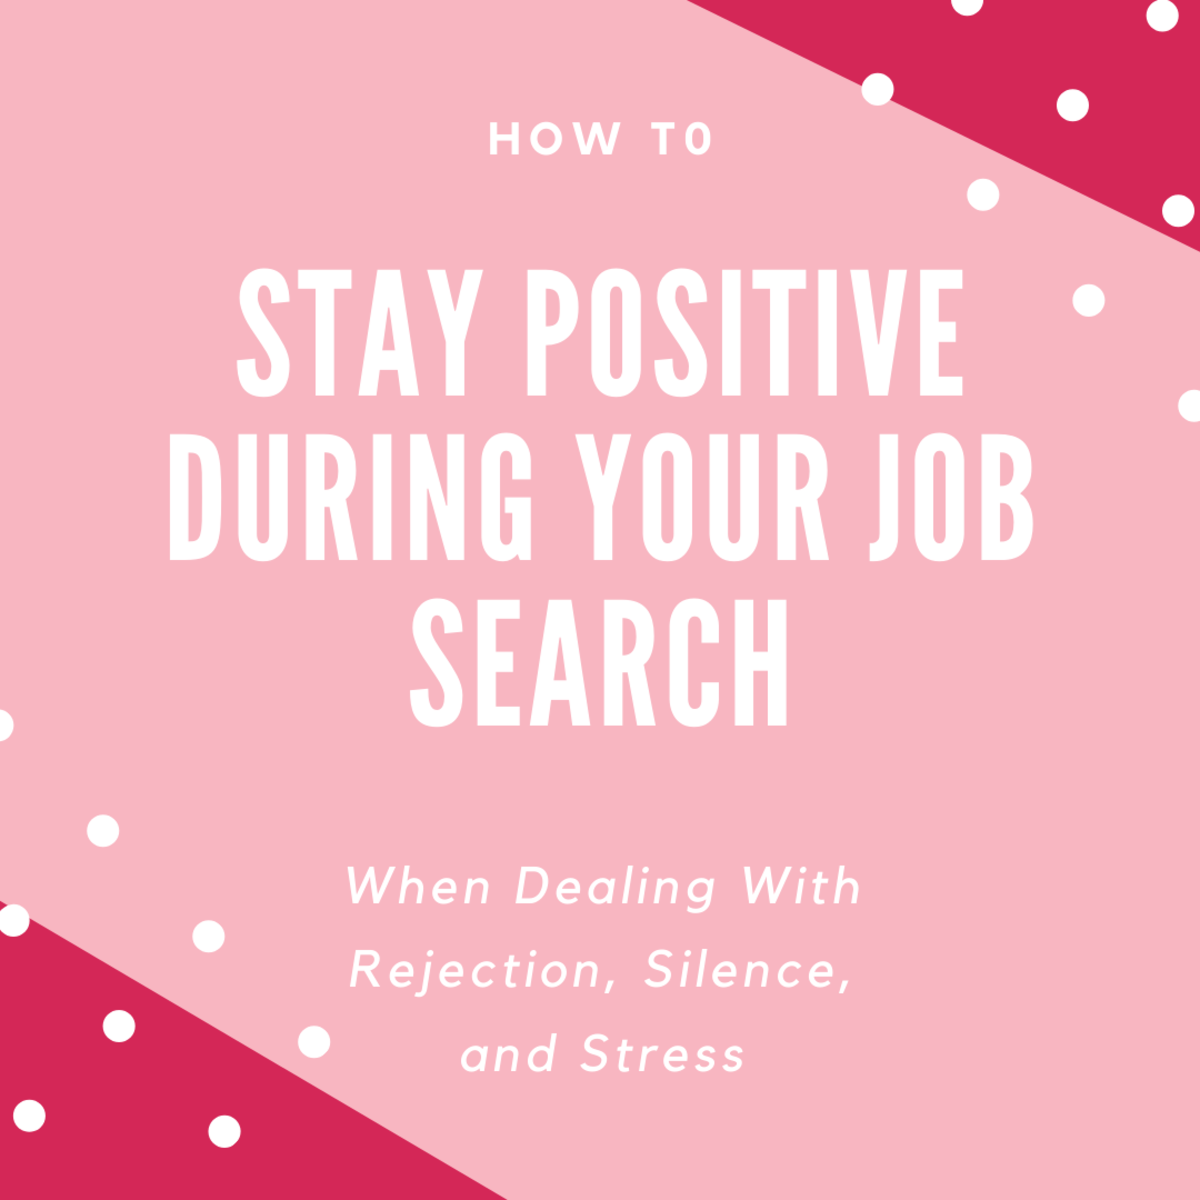 How to Handle Job Search Rejection, Silence, and Stress